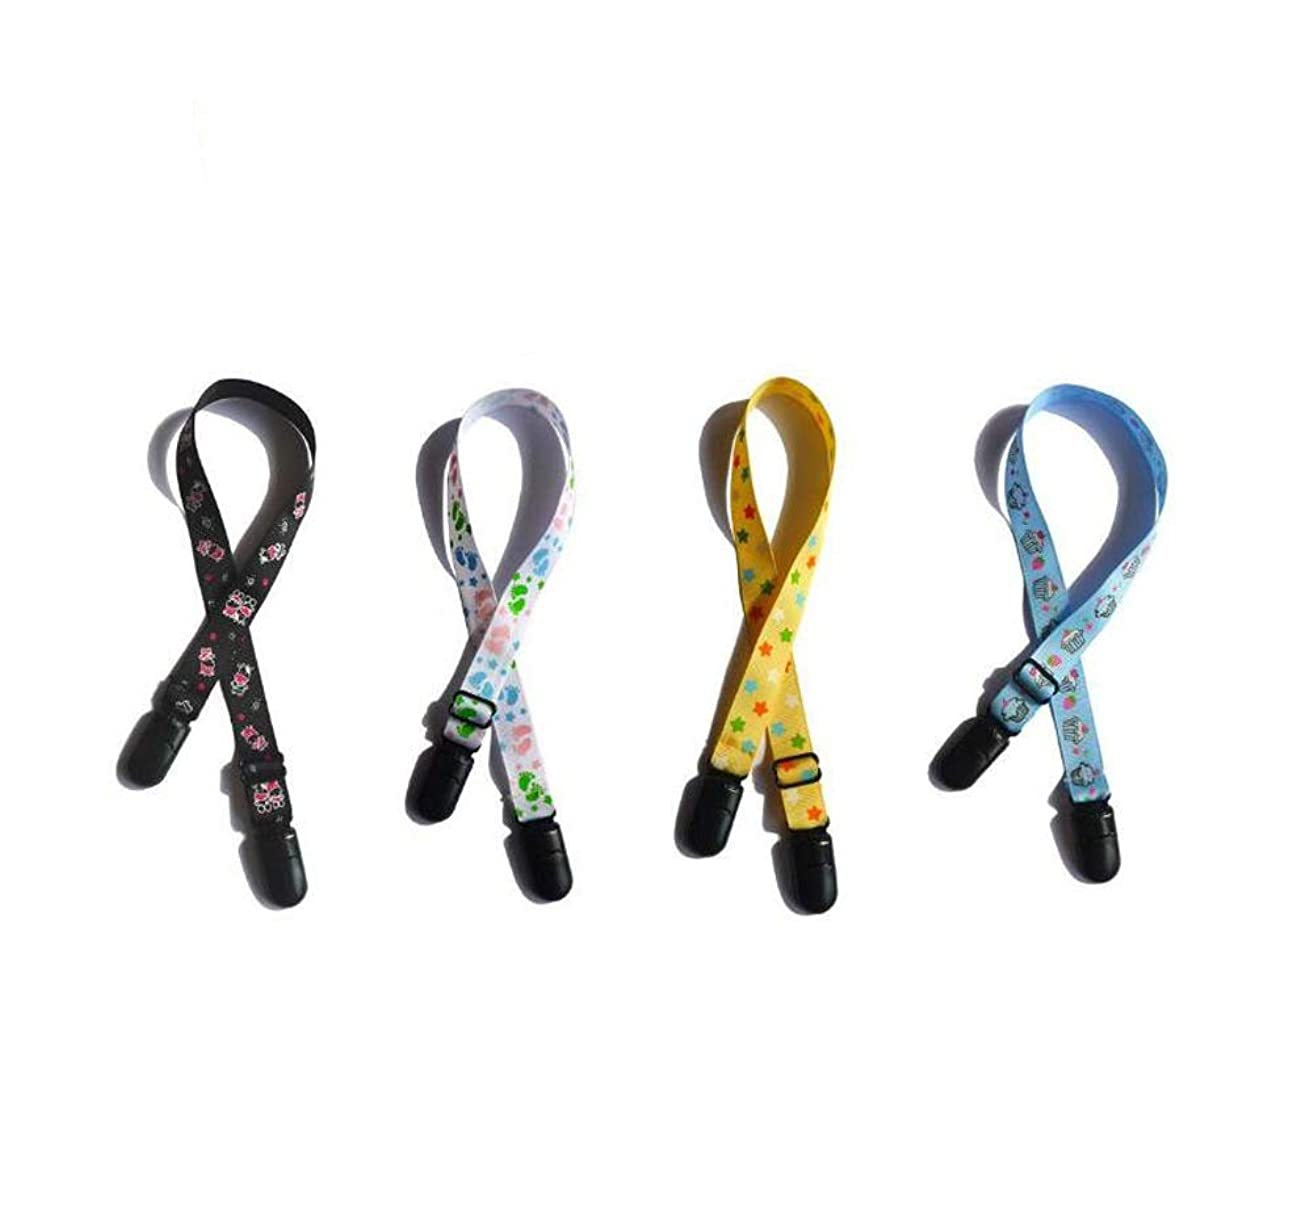 4PCS Assorted Color Printing Adjustable Napkin Clip Neck Strap Bibs Clip Clasp Holder Lanyard Saliva Clamp Pinafore Fixation Clip Towel Apron Bibs Chain for Elderly Adult Baby Color Random